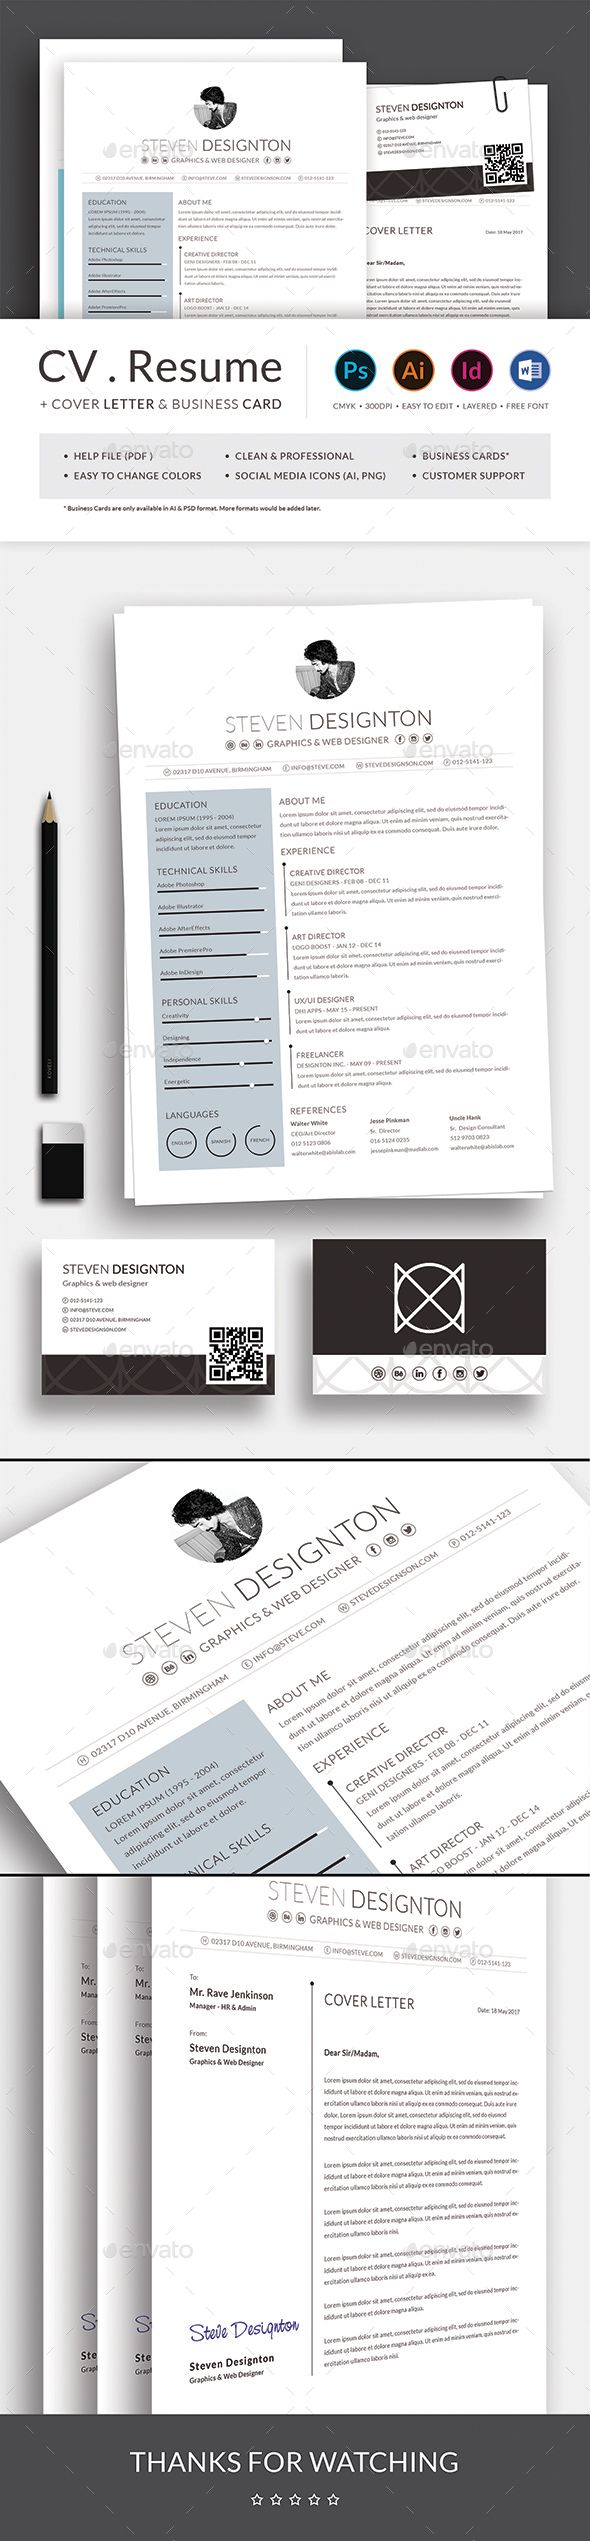 Resume CV with Business Card 1458 best